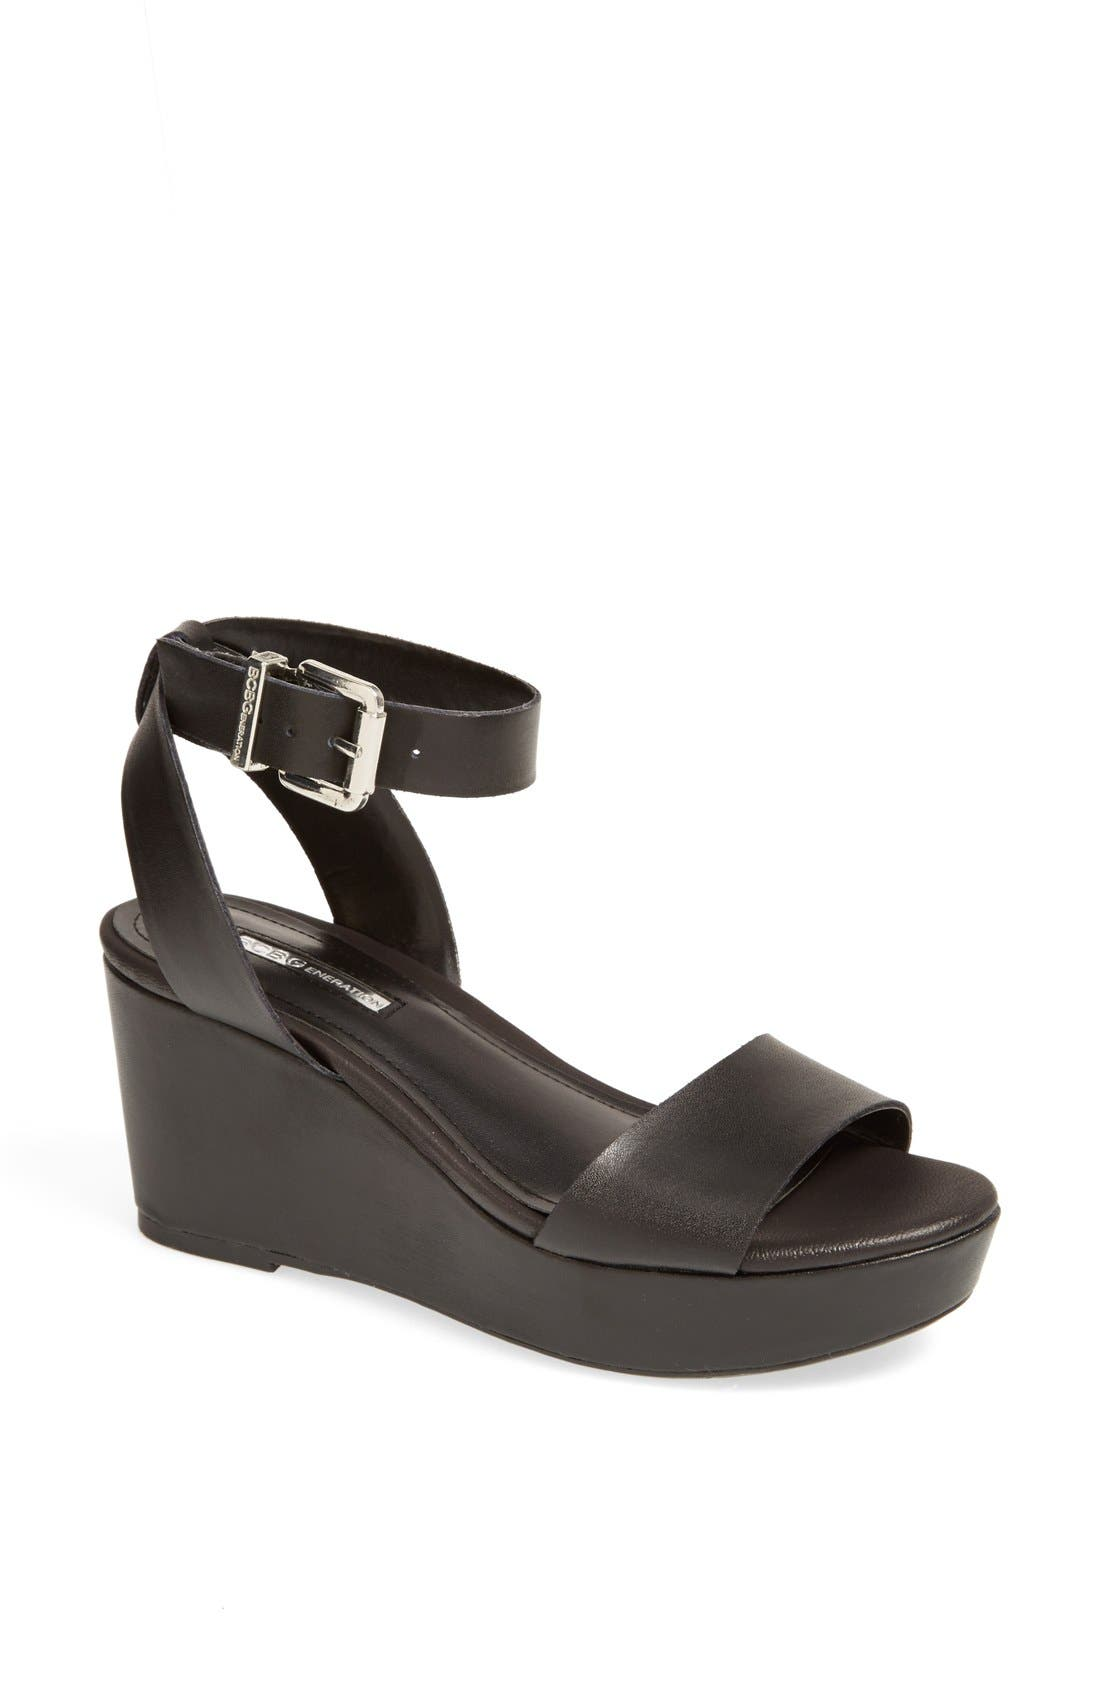 Alternate Image 1 Selected - BCBGeneration 'Fiji' Wedge Sandal